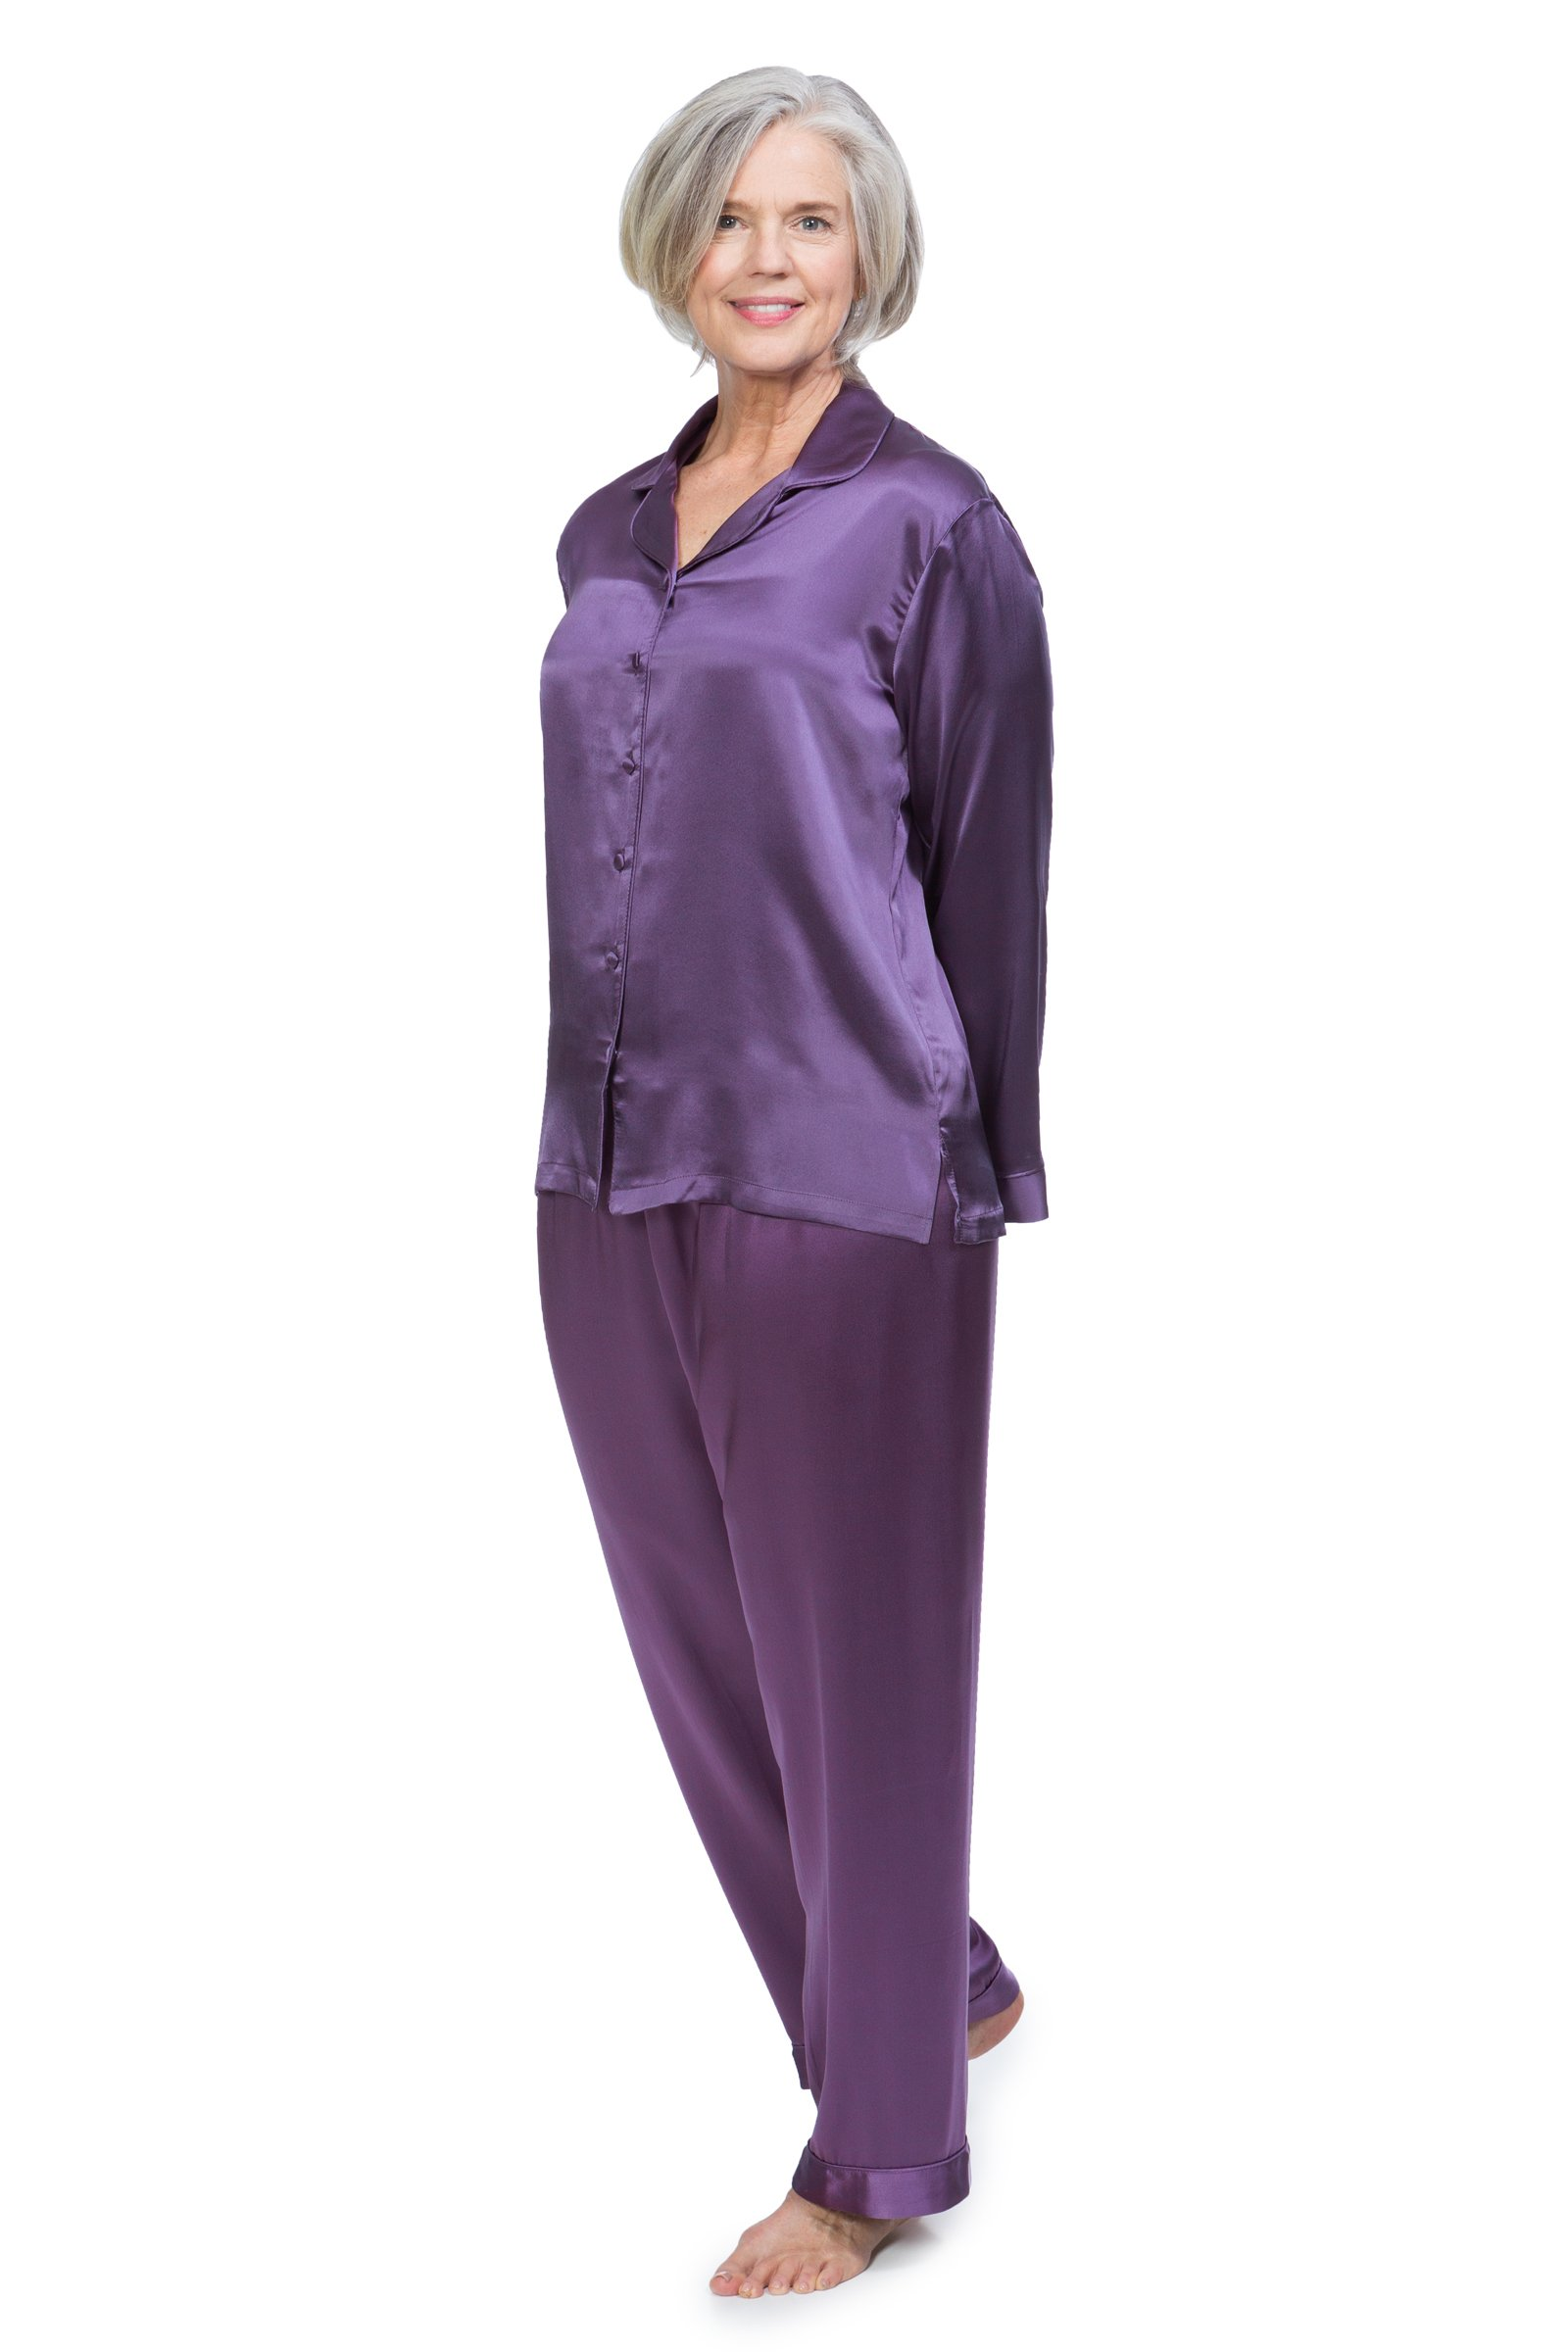 TexereSilk Women's 100% Silk Pajama Set - Luxury Sleepwear PJS (Morning Dew, Grape, 2X/Petite) Great Gifts For Anniversary Birthday WS0001-GRP-2XP